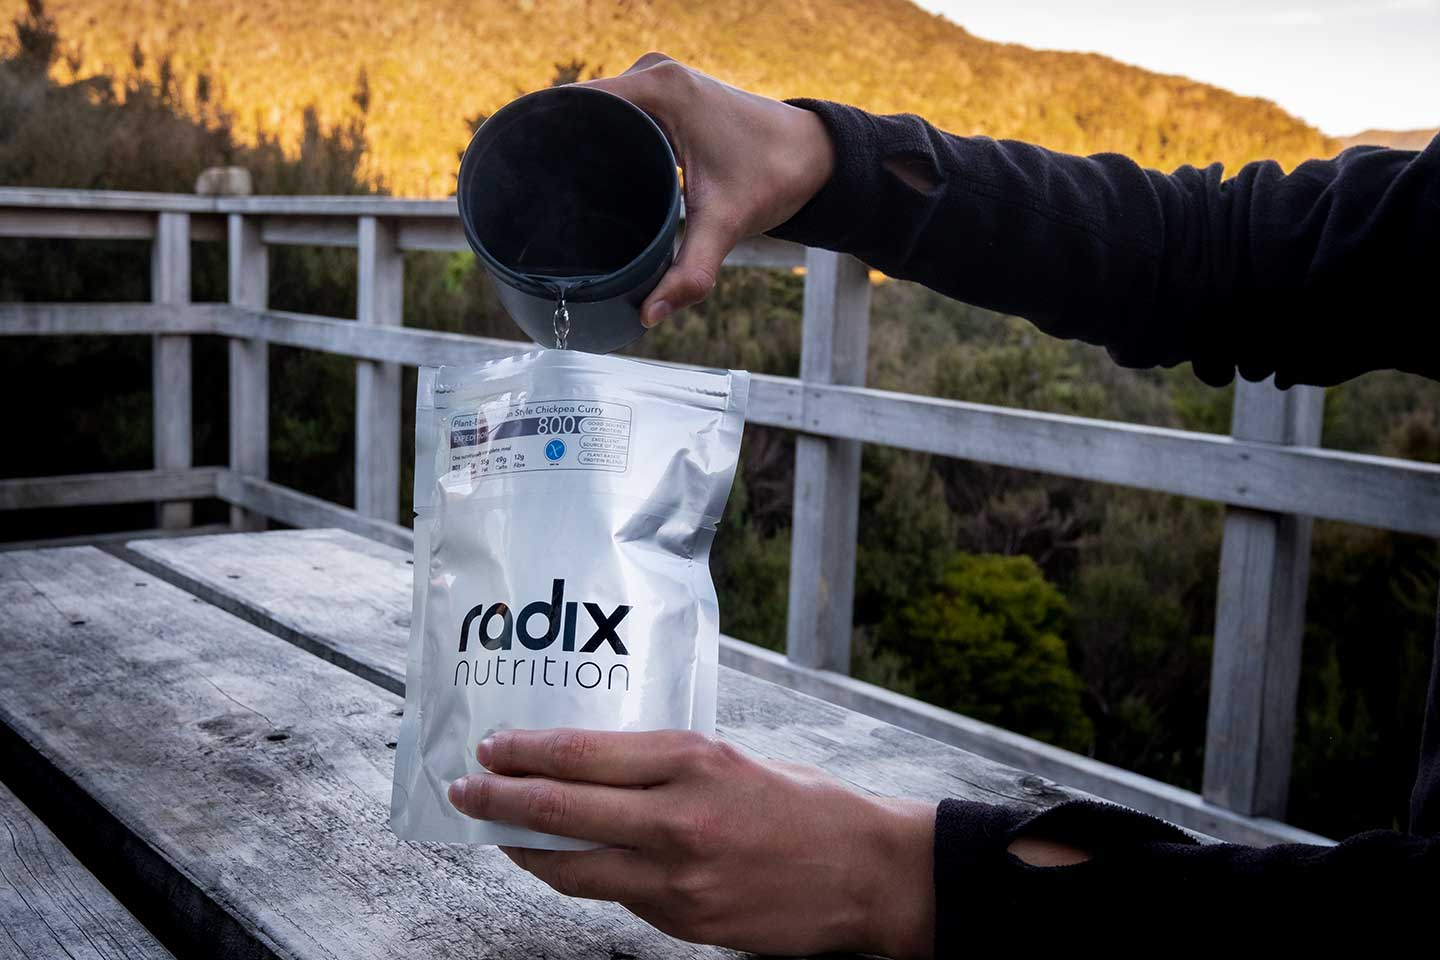 Pouring boiling water into a Radix Nutrition chickpea curry.